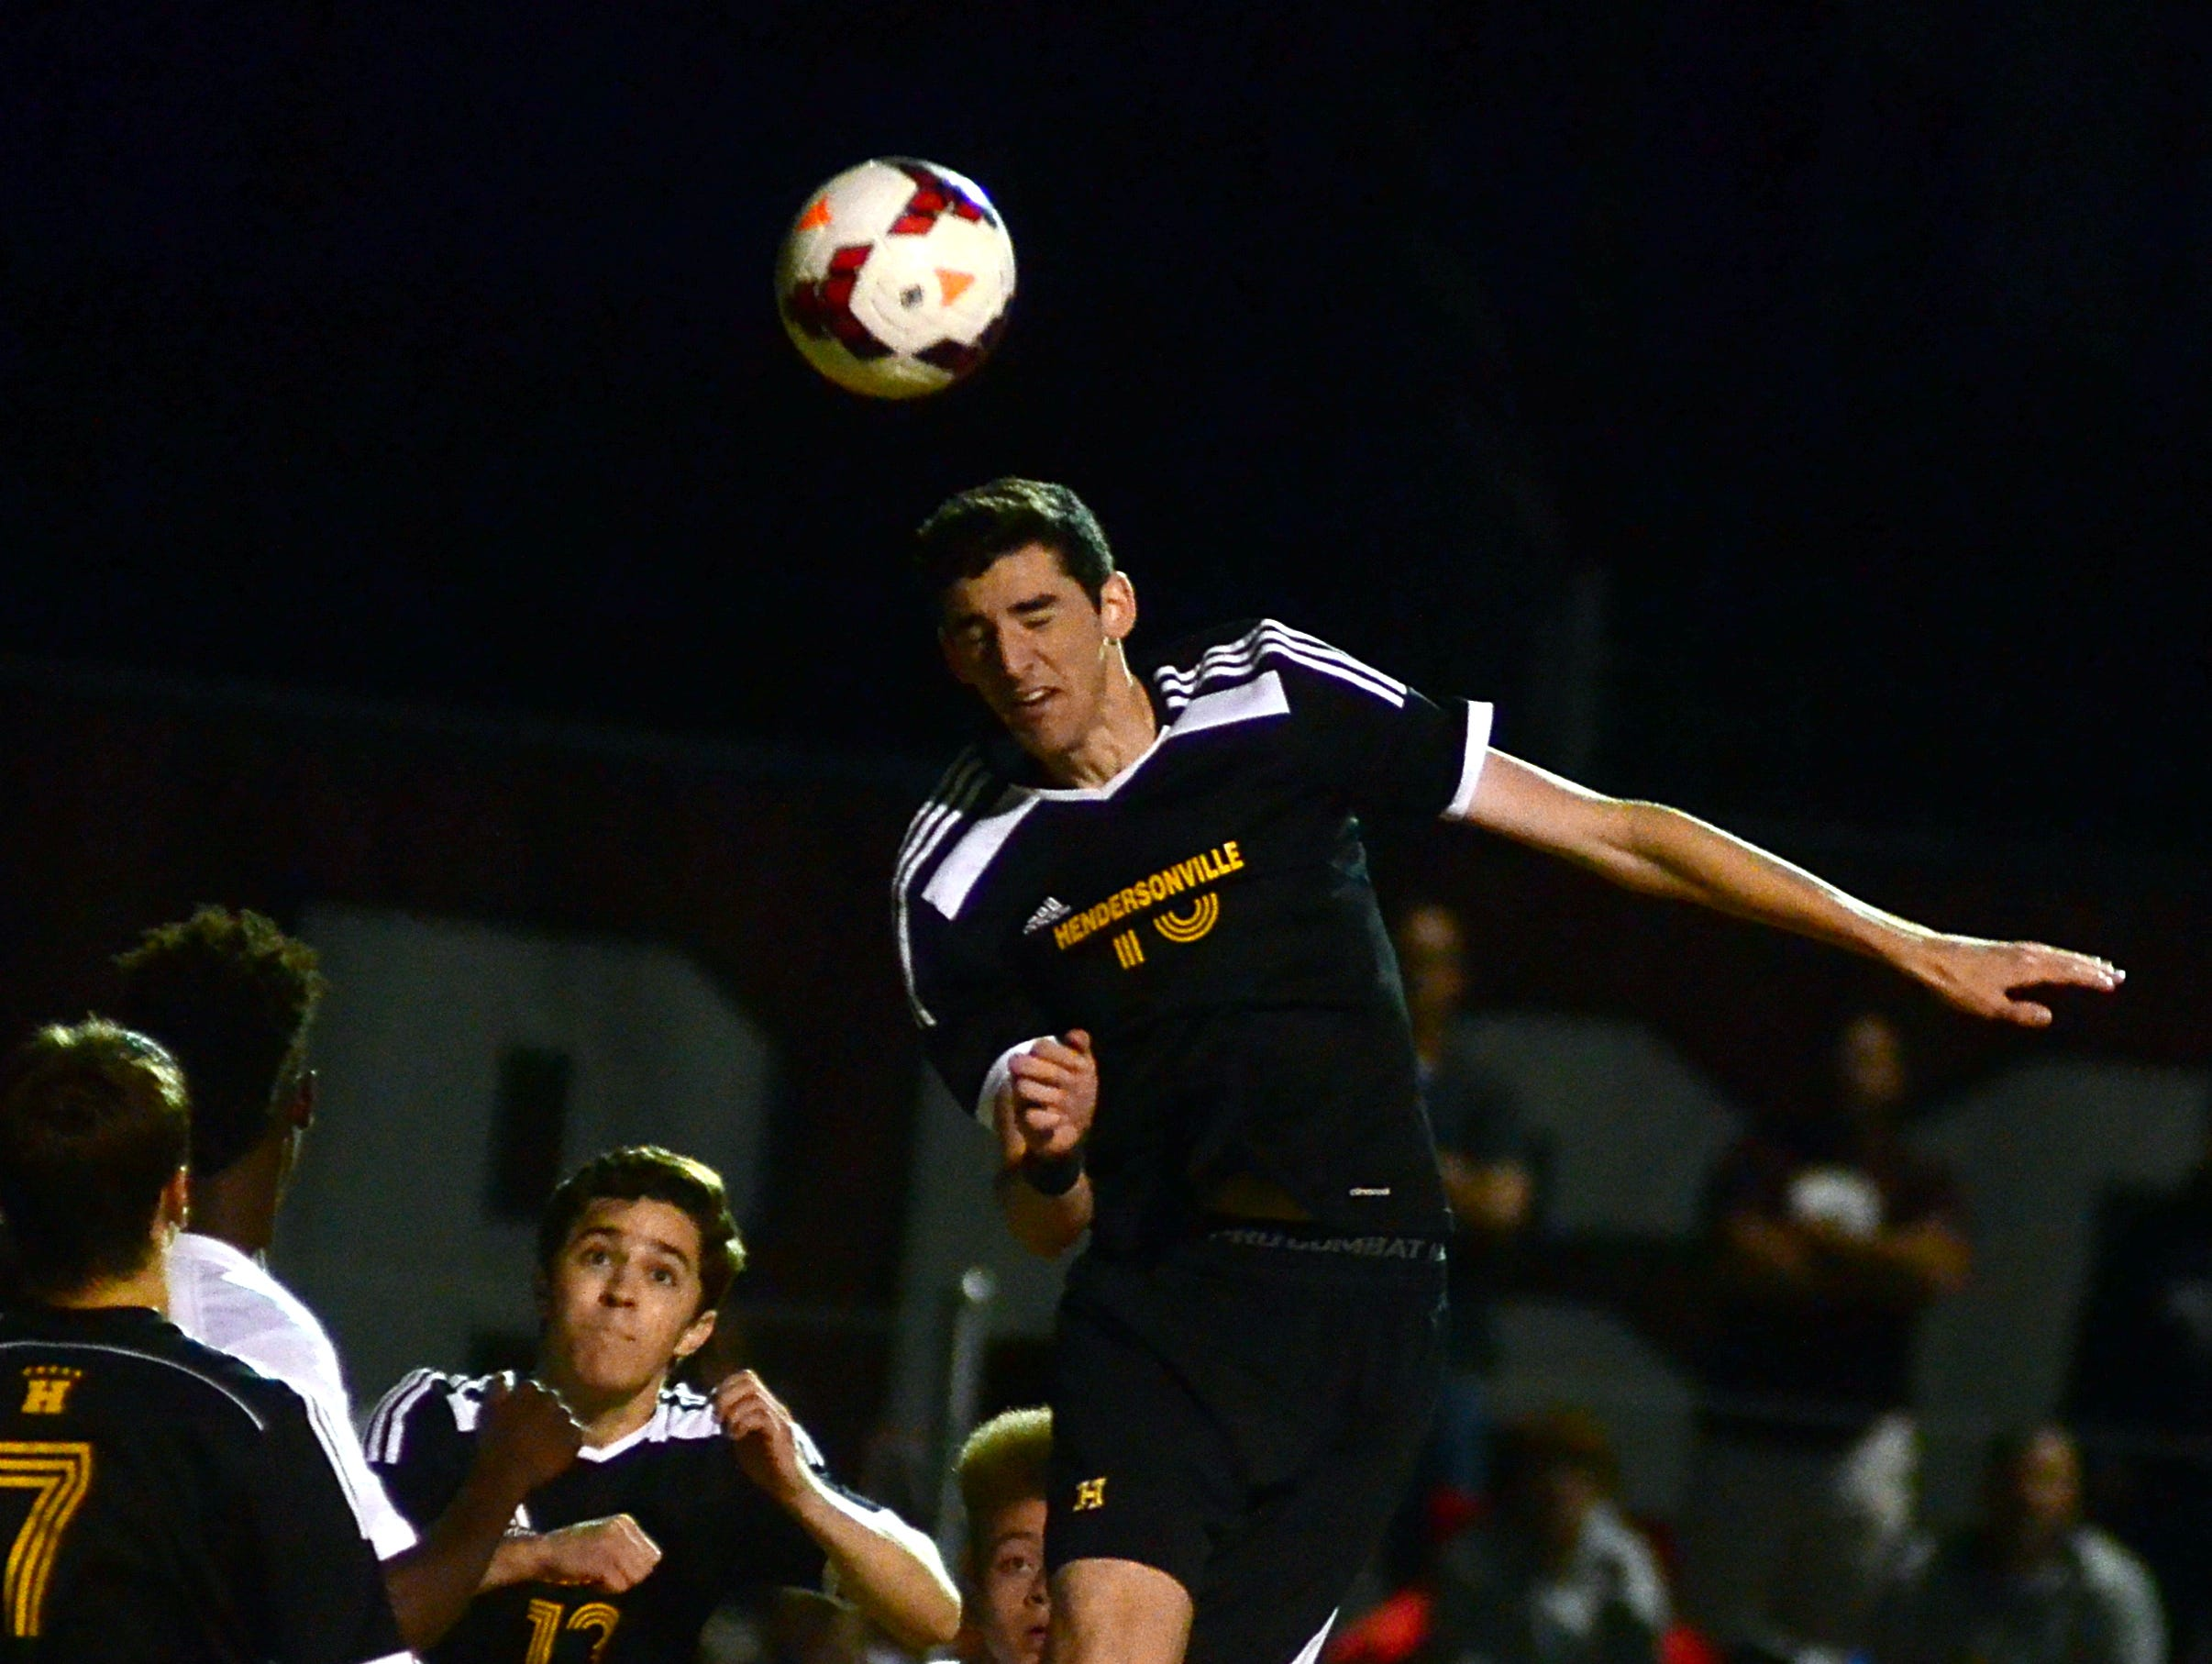 Hendersonville High senior Reed Coffman heads a ball in the box during second-half action. Coffman scored Hendersonville's lone goal in Thursday evening's 2-1 loss at Station Camp in the Region 5-AAA Tournament championship matchl.